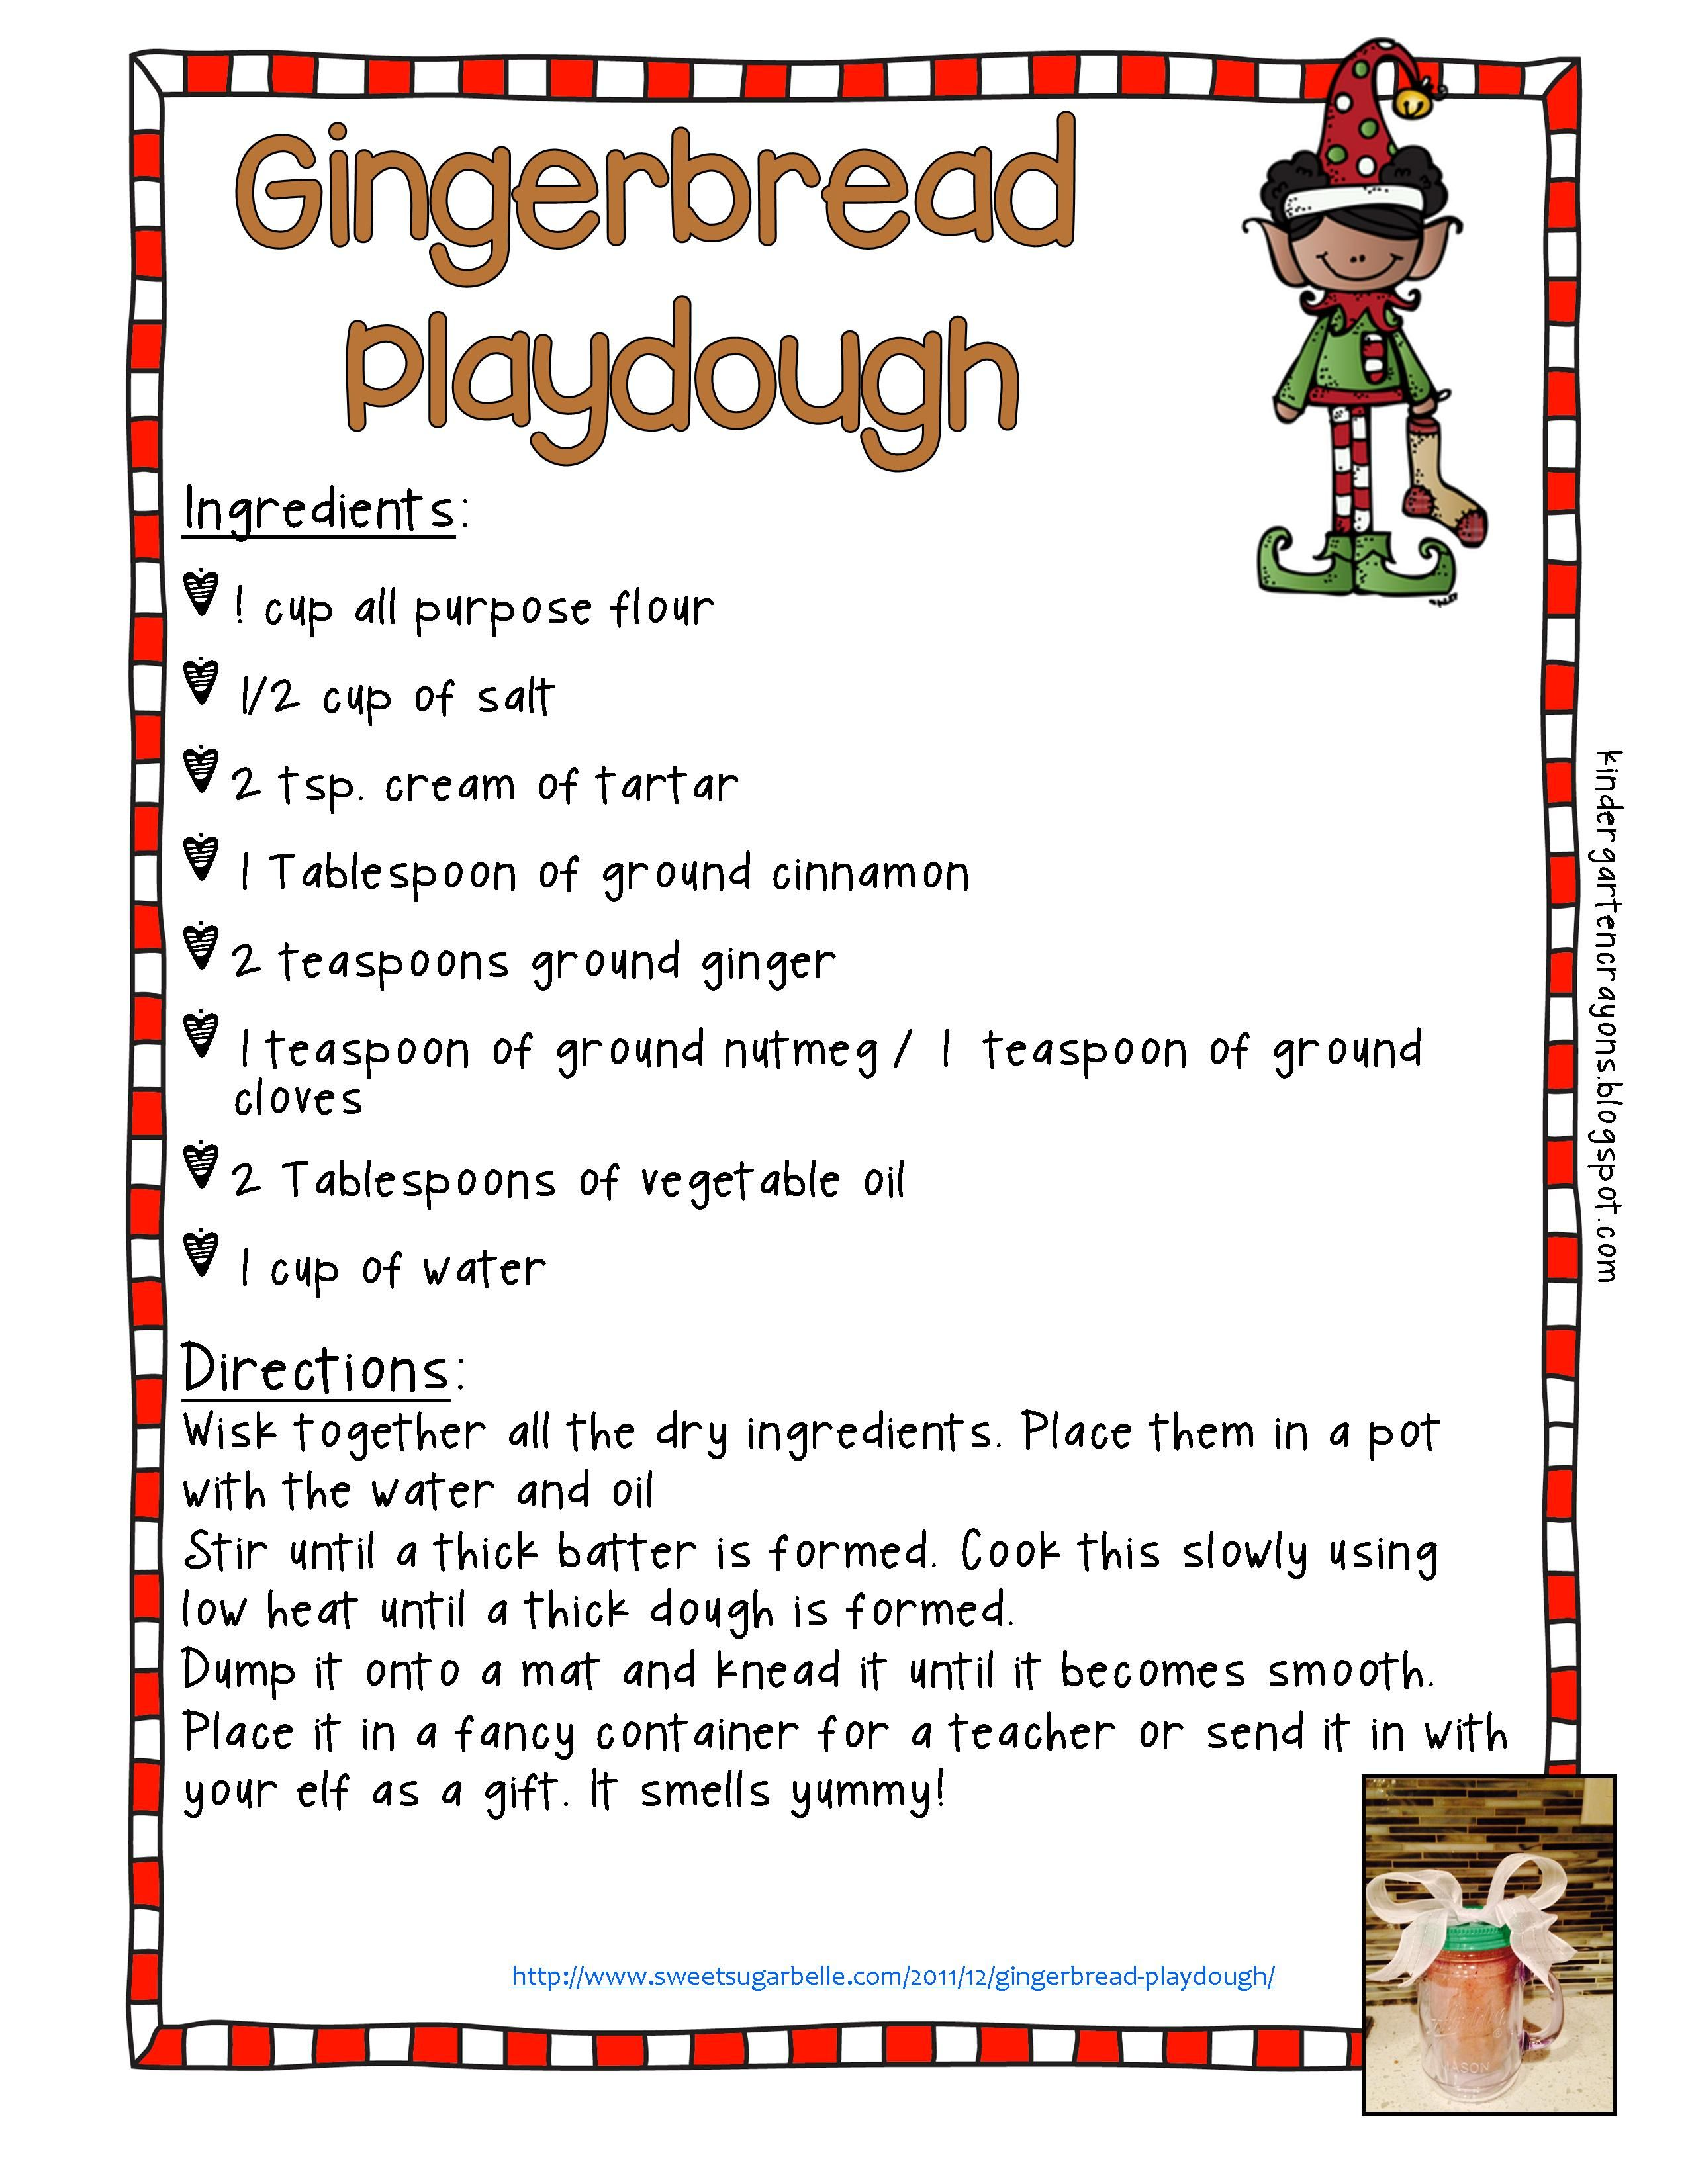 I Love This Playdough Recipe For Gingerbread It Smells